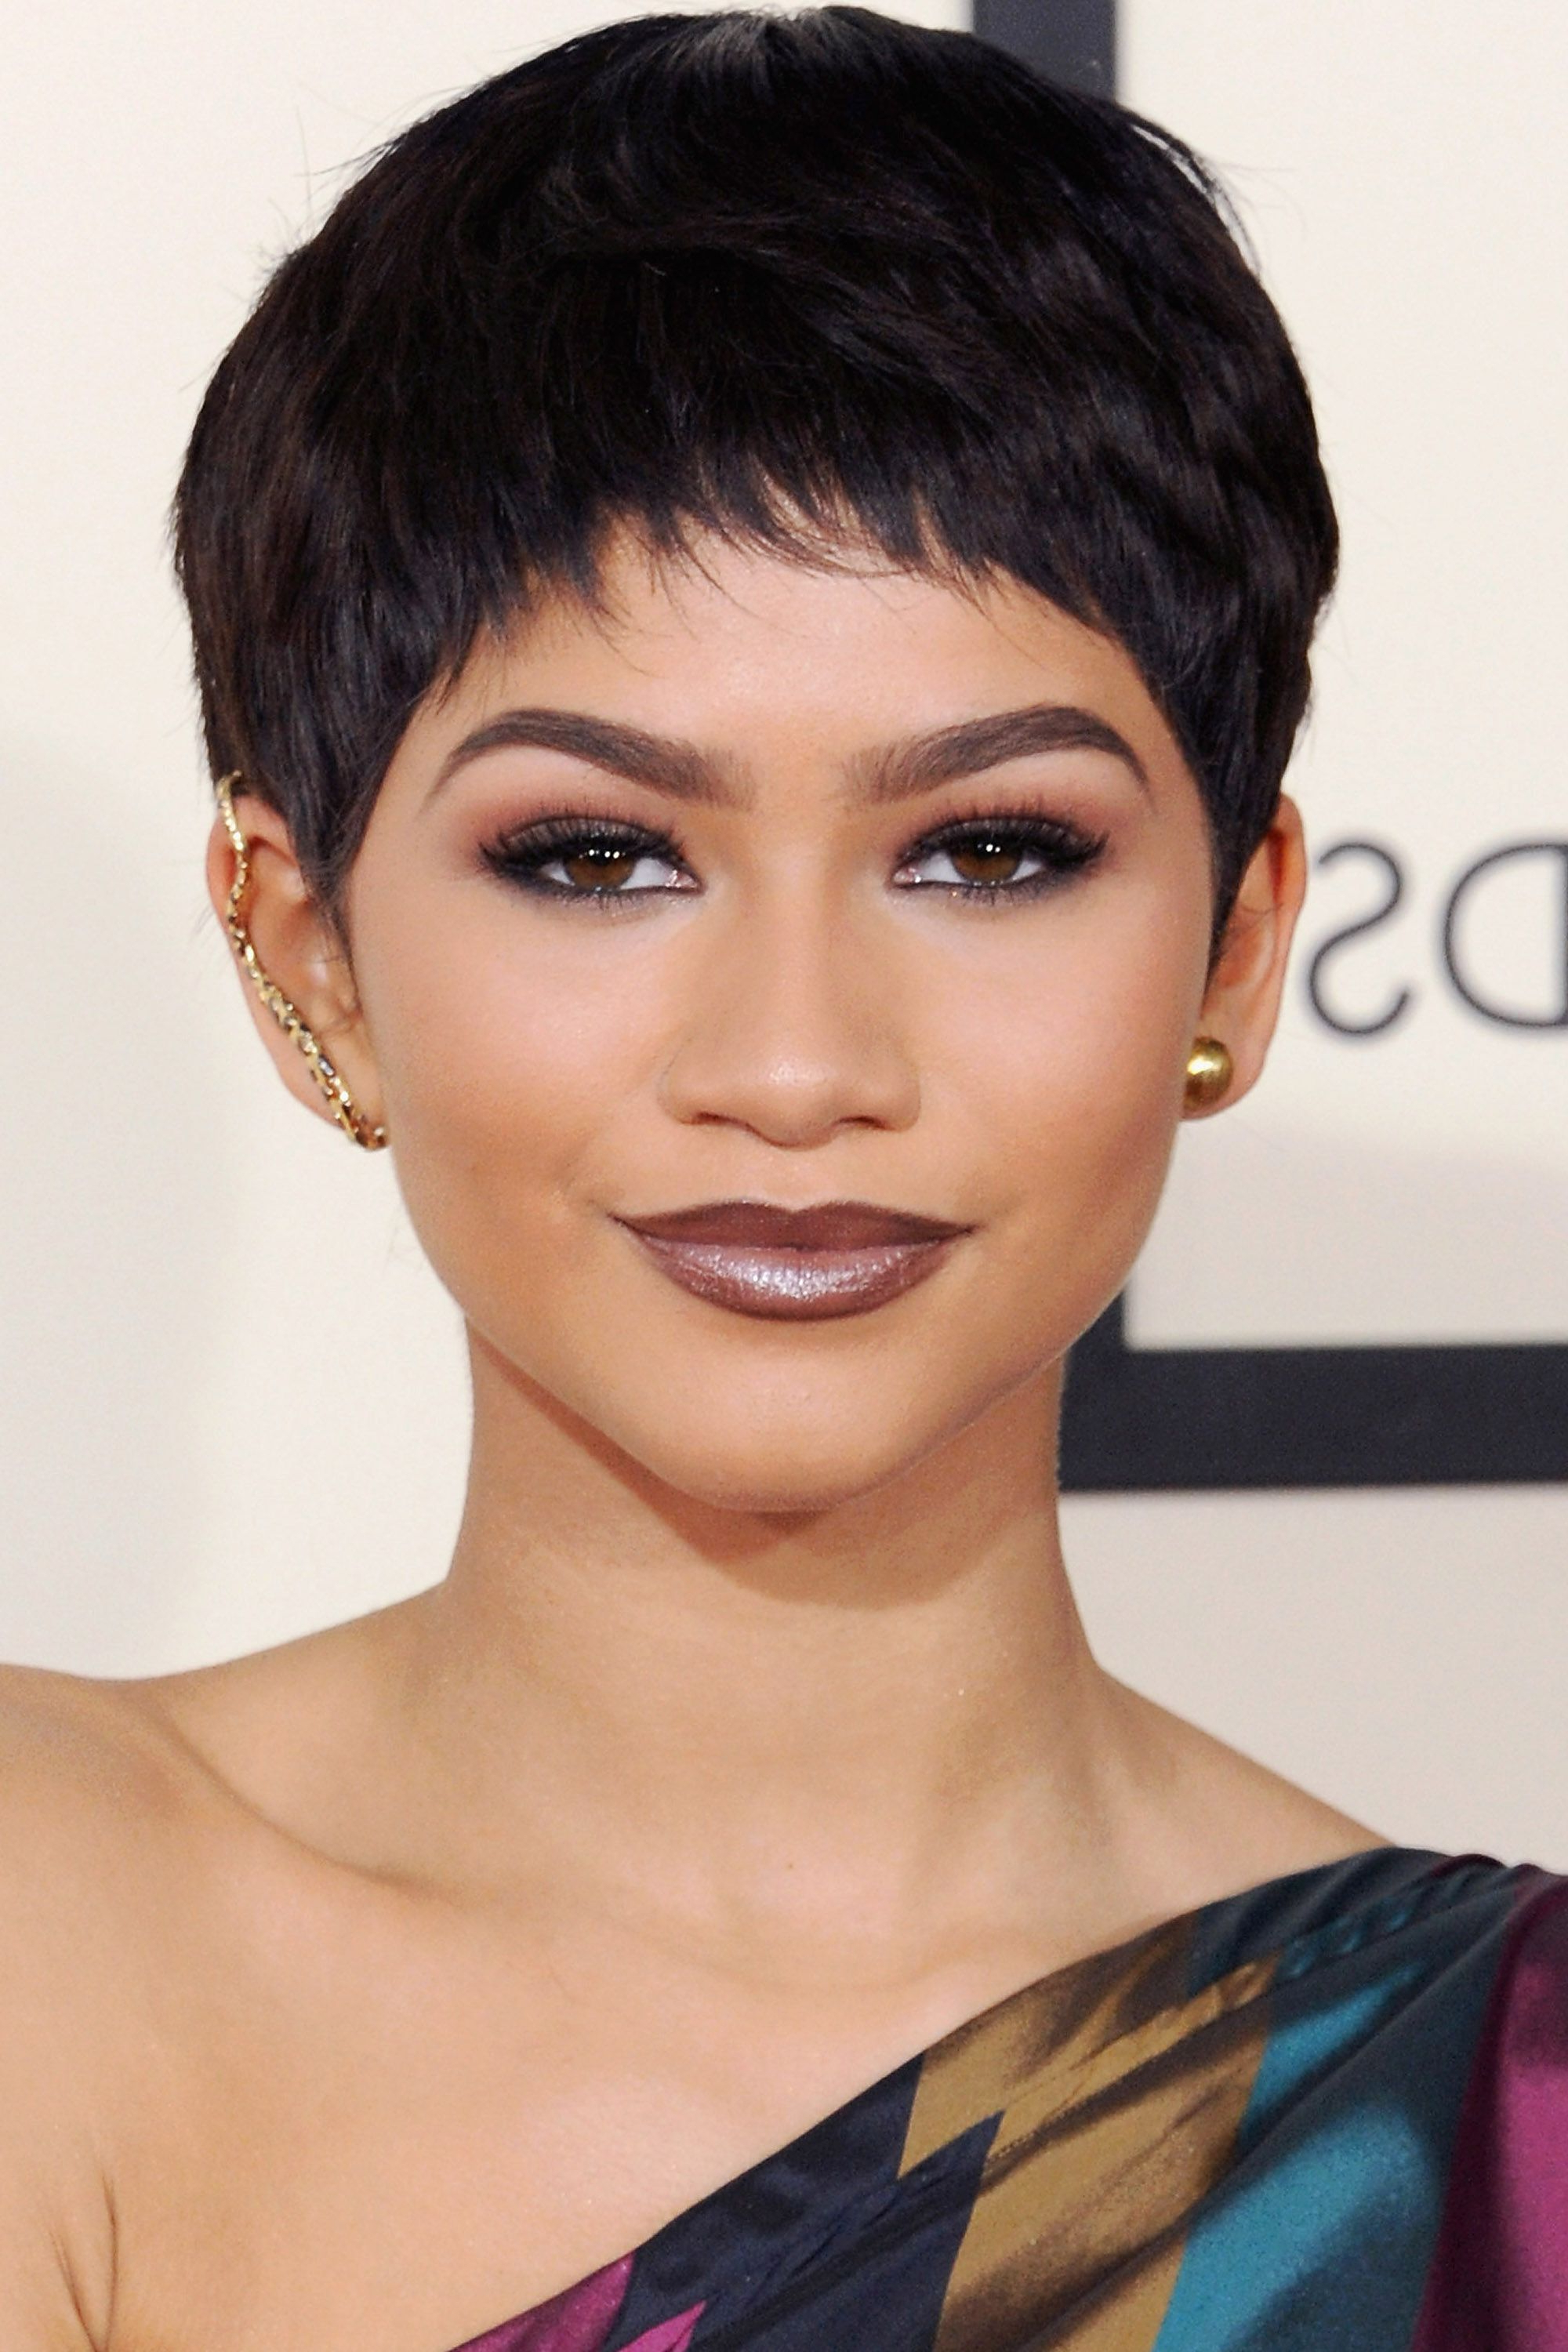 50+ Pixie Cuts We Love For 2018 – Short Pixie Hairstyles From Inside Short Haircuts That Cover Your Ears (View 23 of 25)